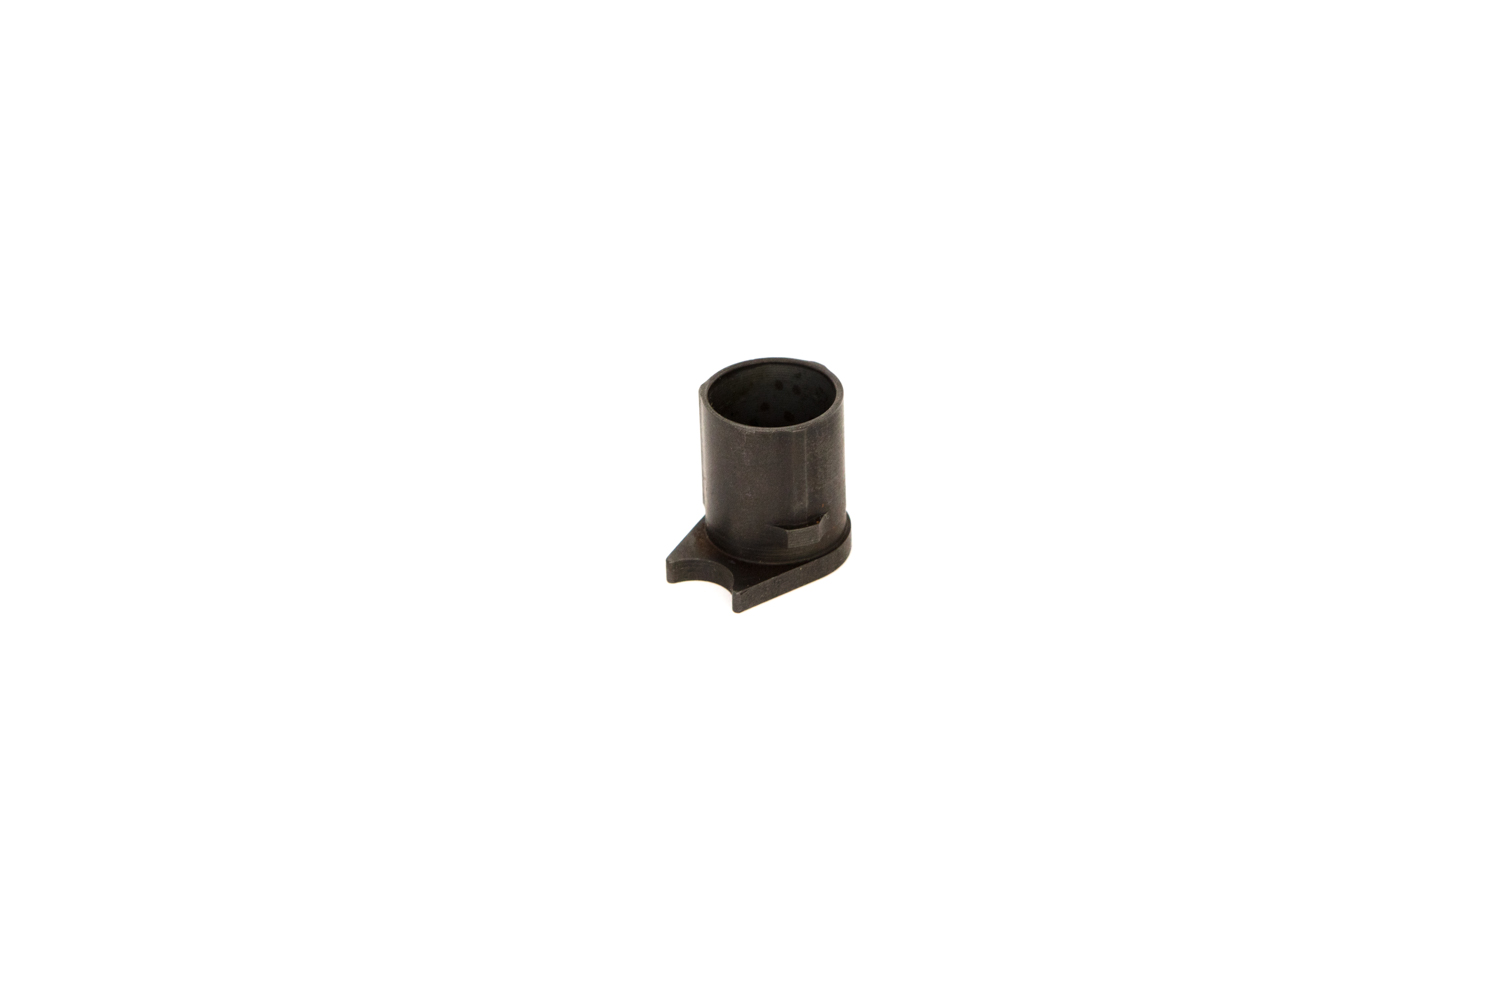 Clark Barrel Bushing Undersize